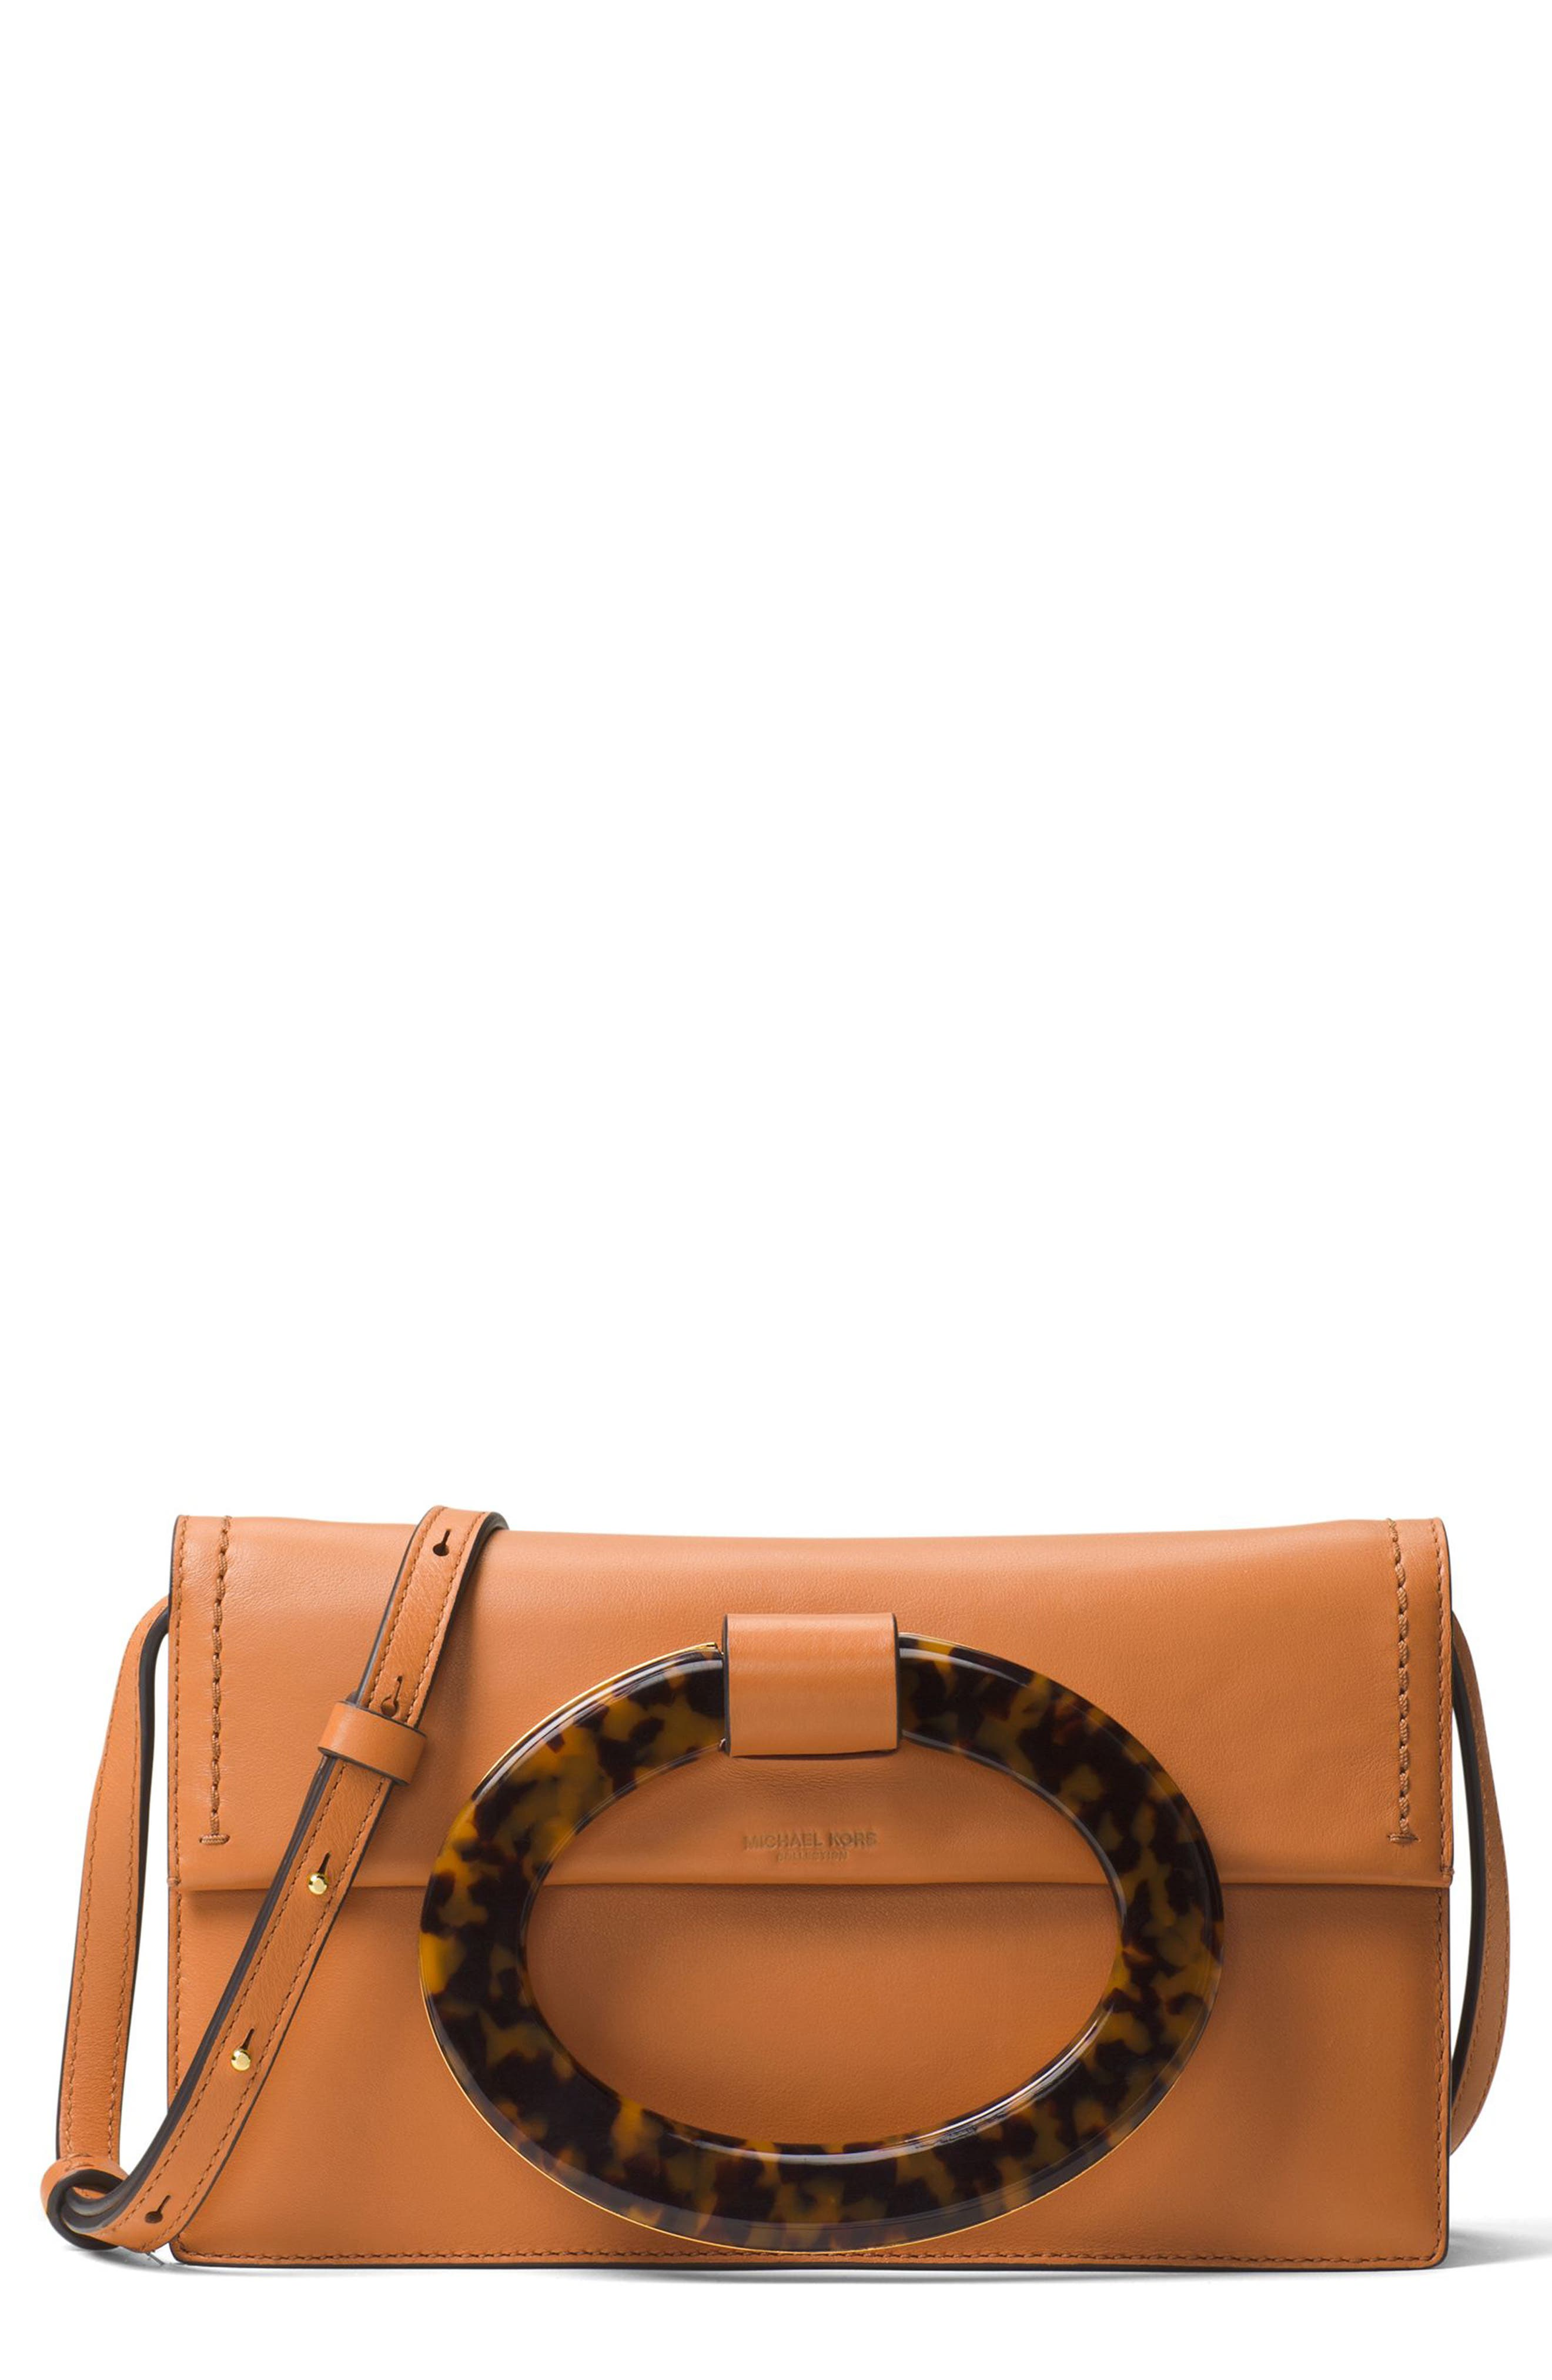 Alternate Image 1 Selected - Michael Kors Baxter Calfskin Leather Convertible Clutch